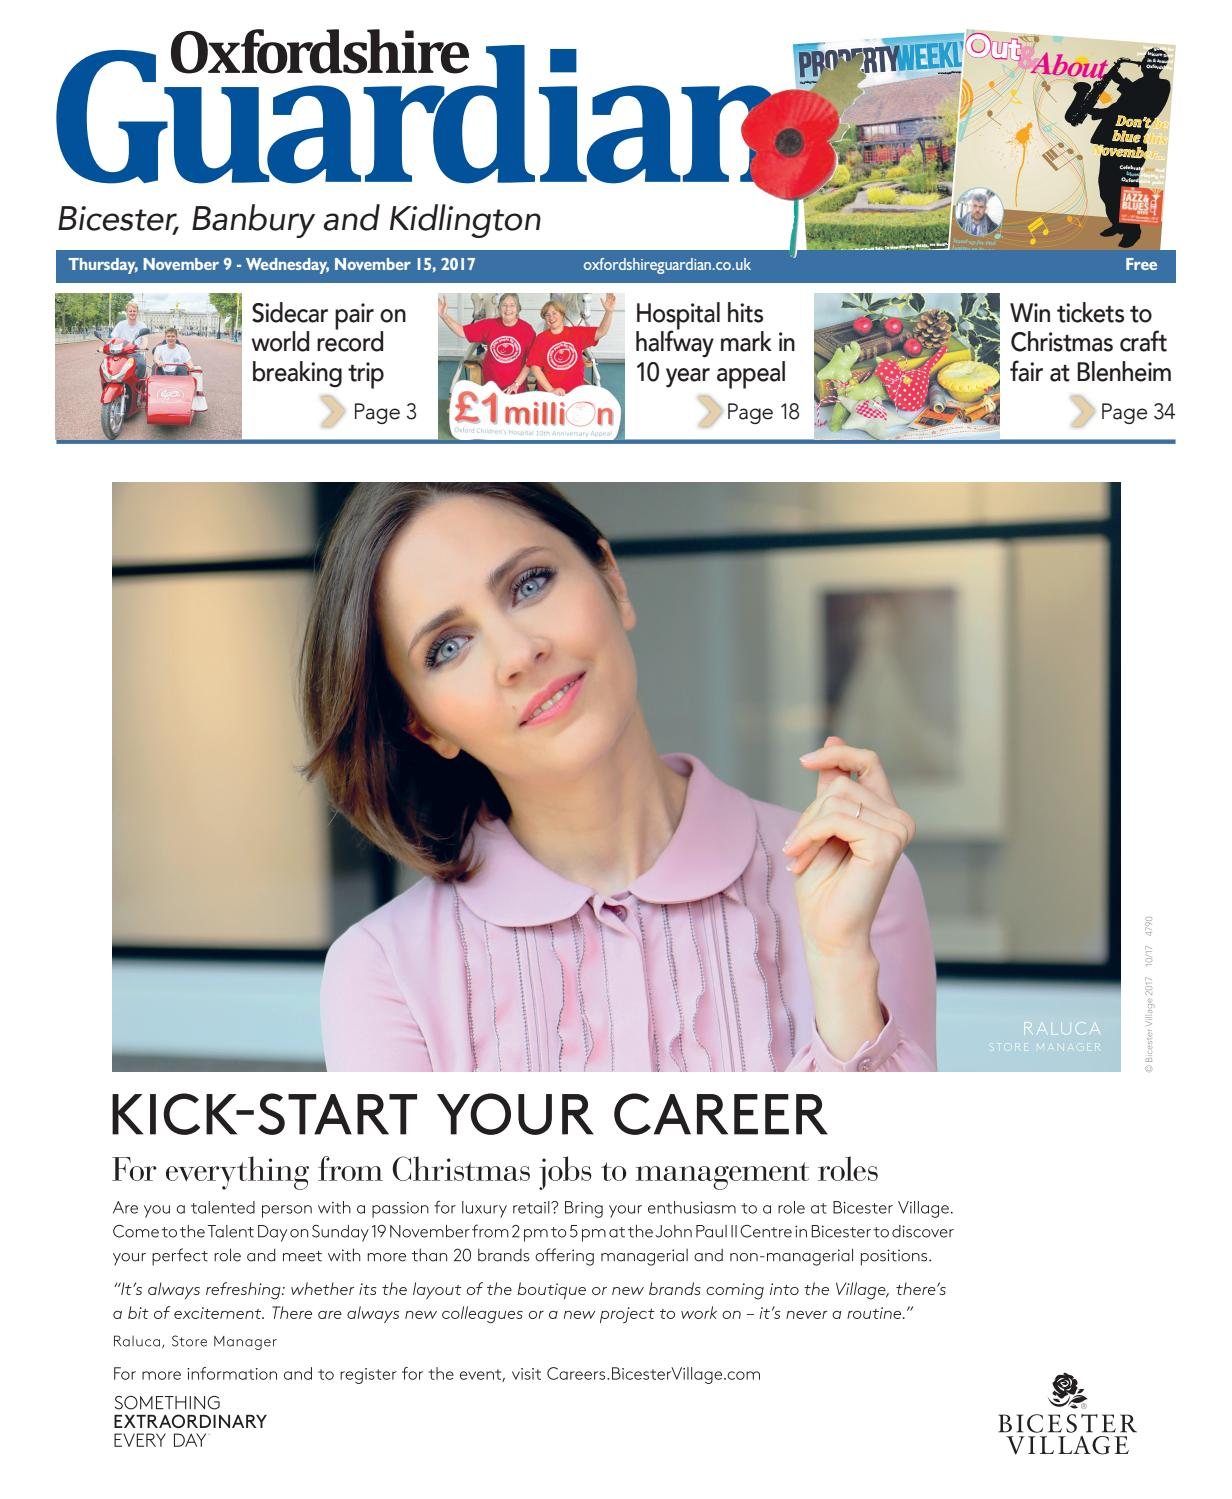 61c398fe 9%20november%202017%20oxfordshire%20guardian%20bicester by Taylor  Newspapers - issuu